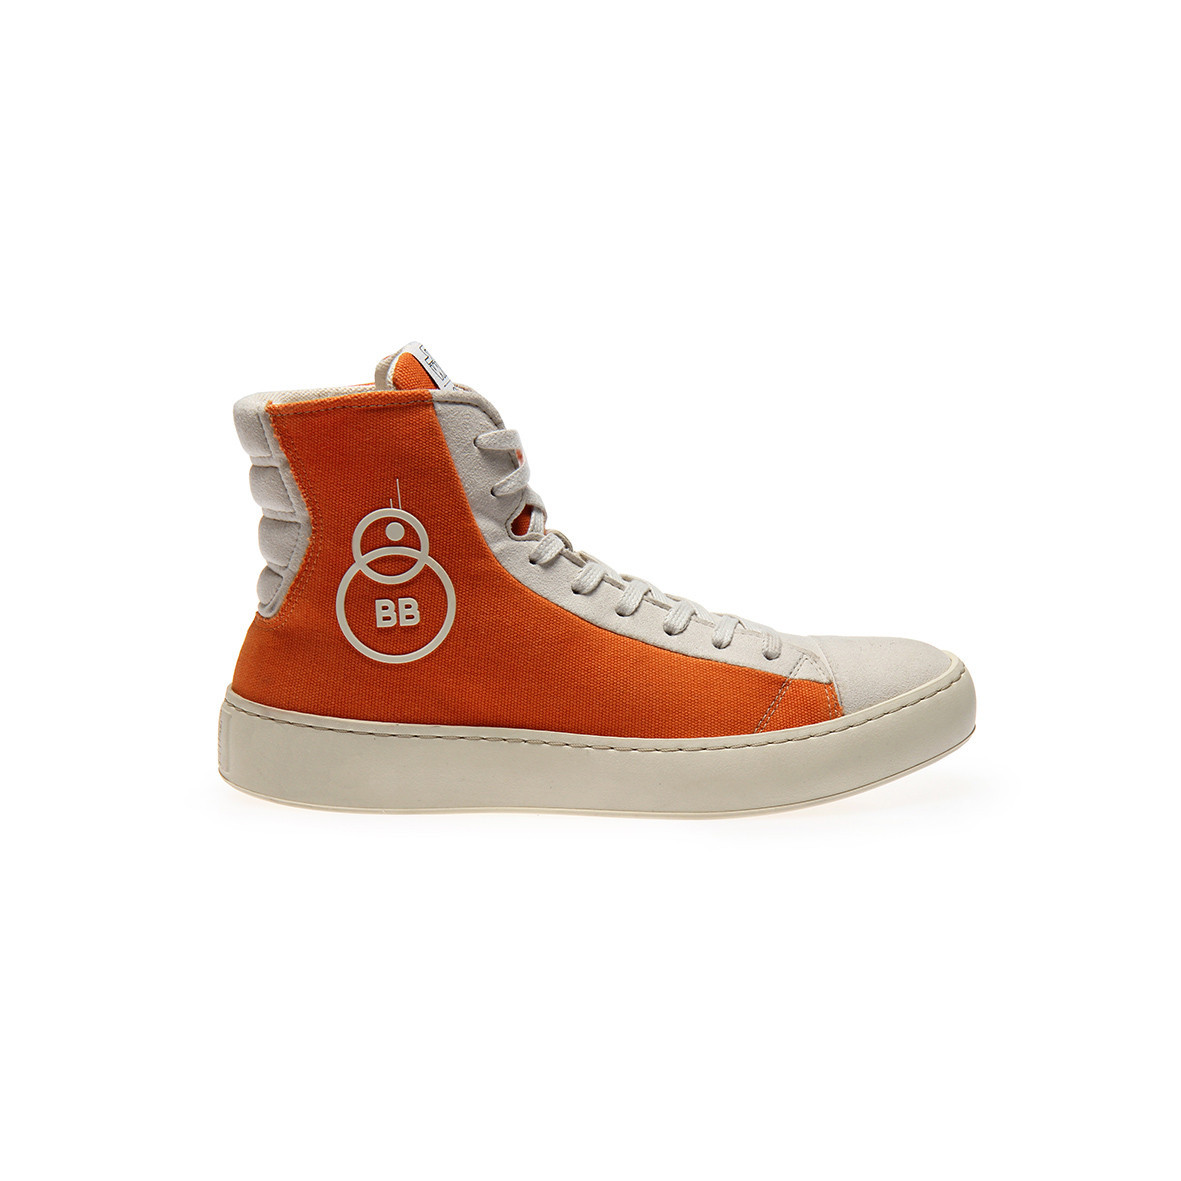 Po-Zu x Star Wars women's The Force Awakens BB-8 orange sneakers